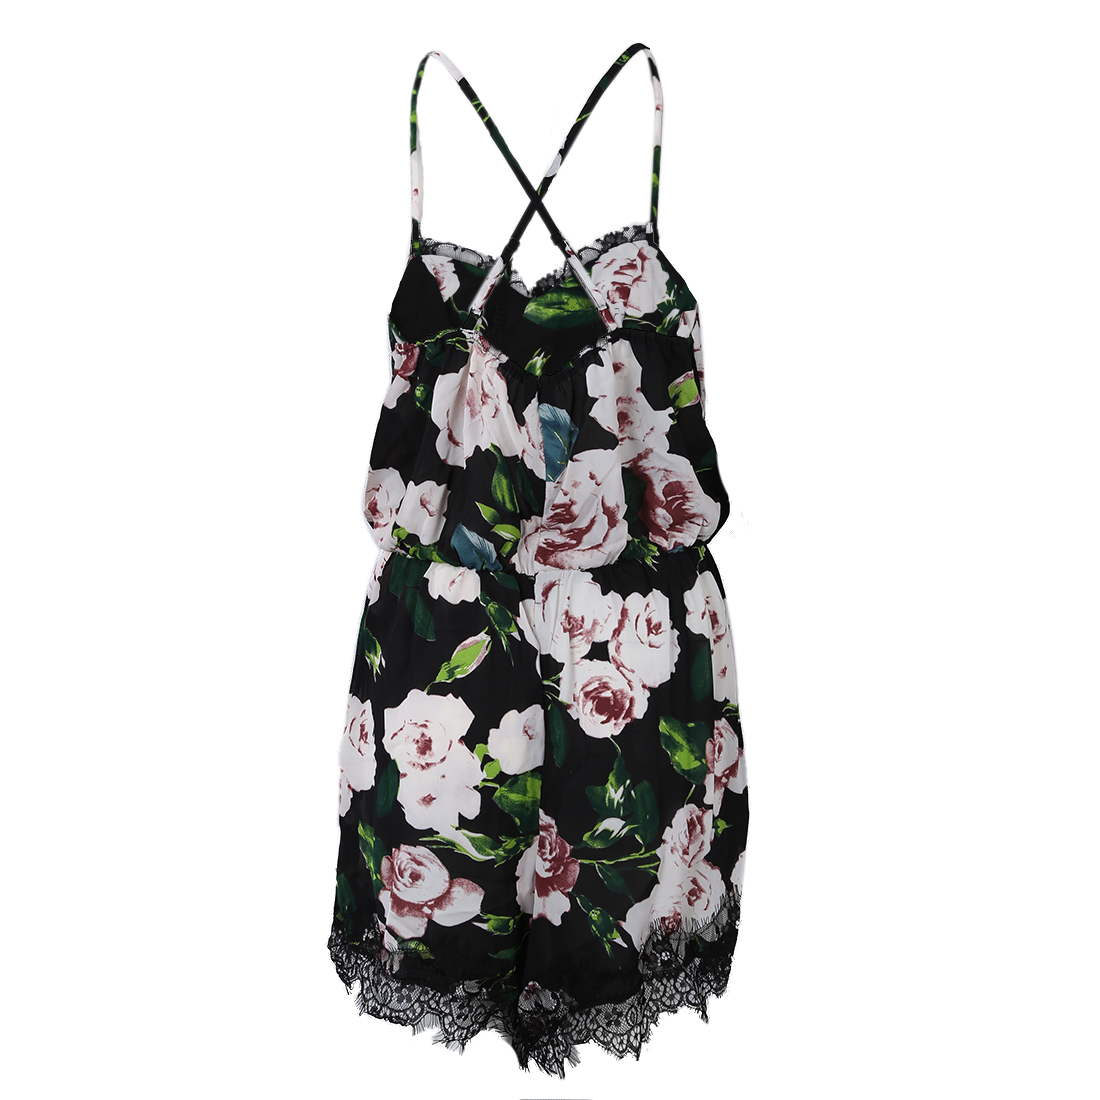 Women Floral Lace Chiffon Bodycon Jumpsuit Playsuit Romper Black Bottom with Pink Flowers